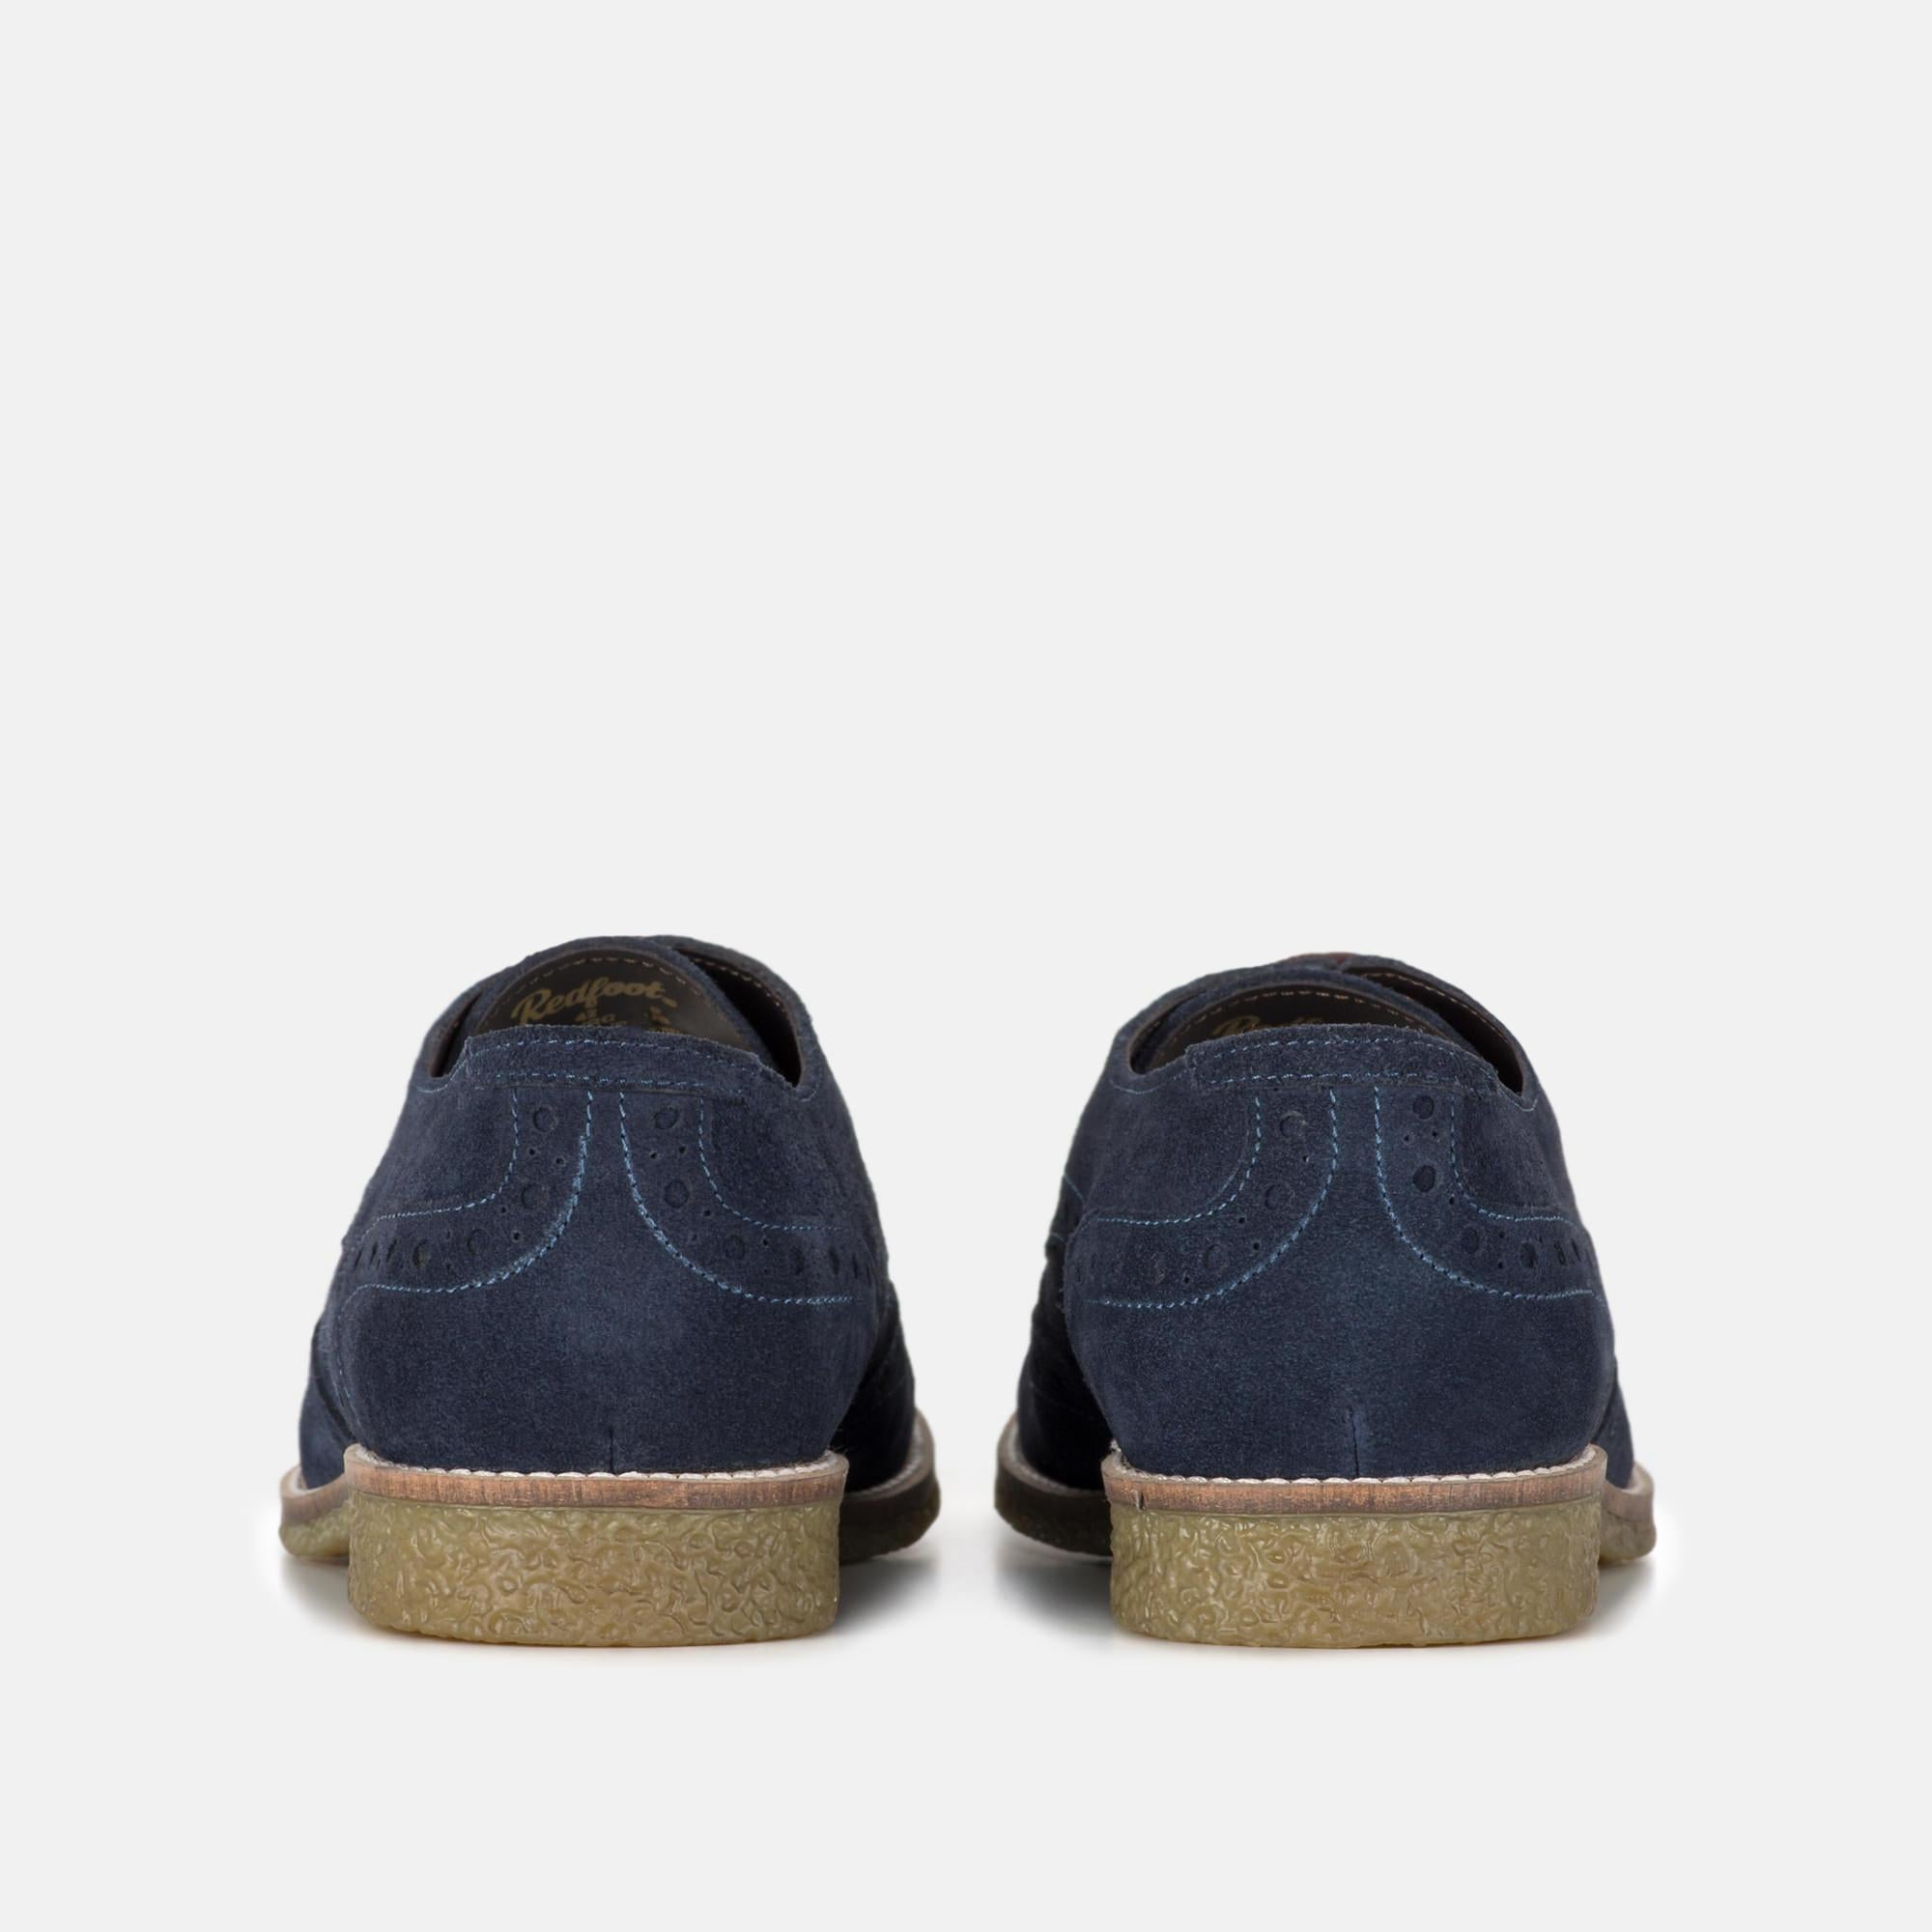 Redfoot Footwear UK 6 / EURO 39 / US 7 / Navy / Suede ROBINSON NAVY